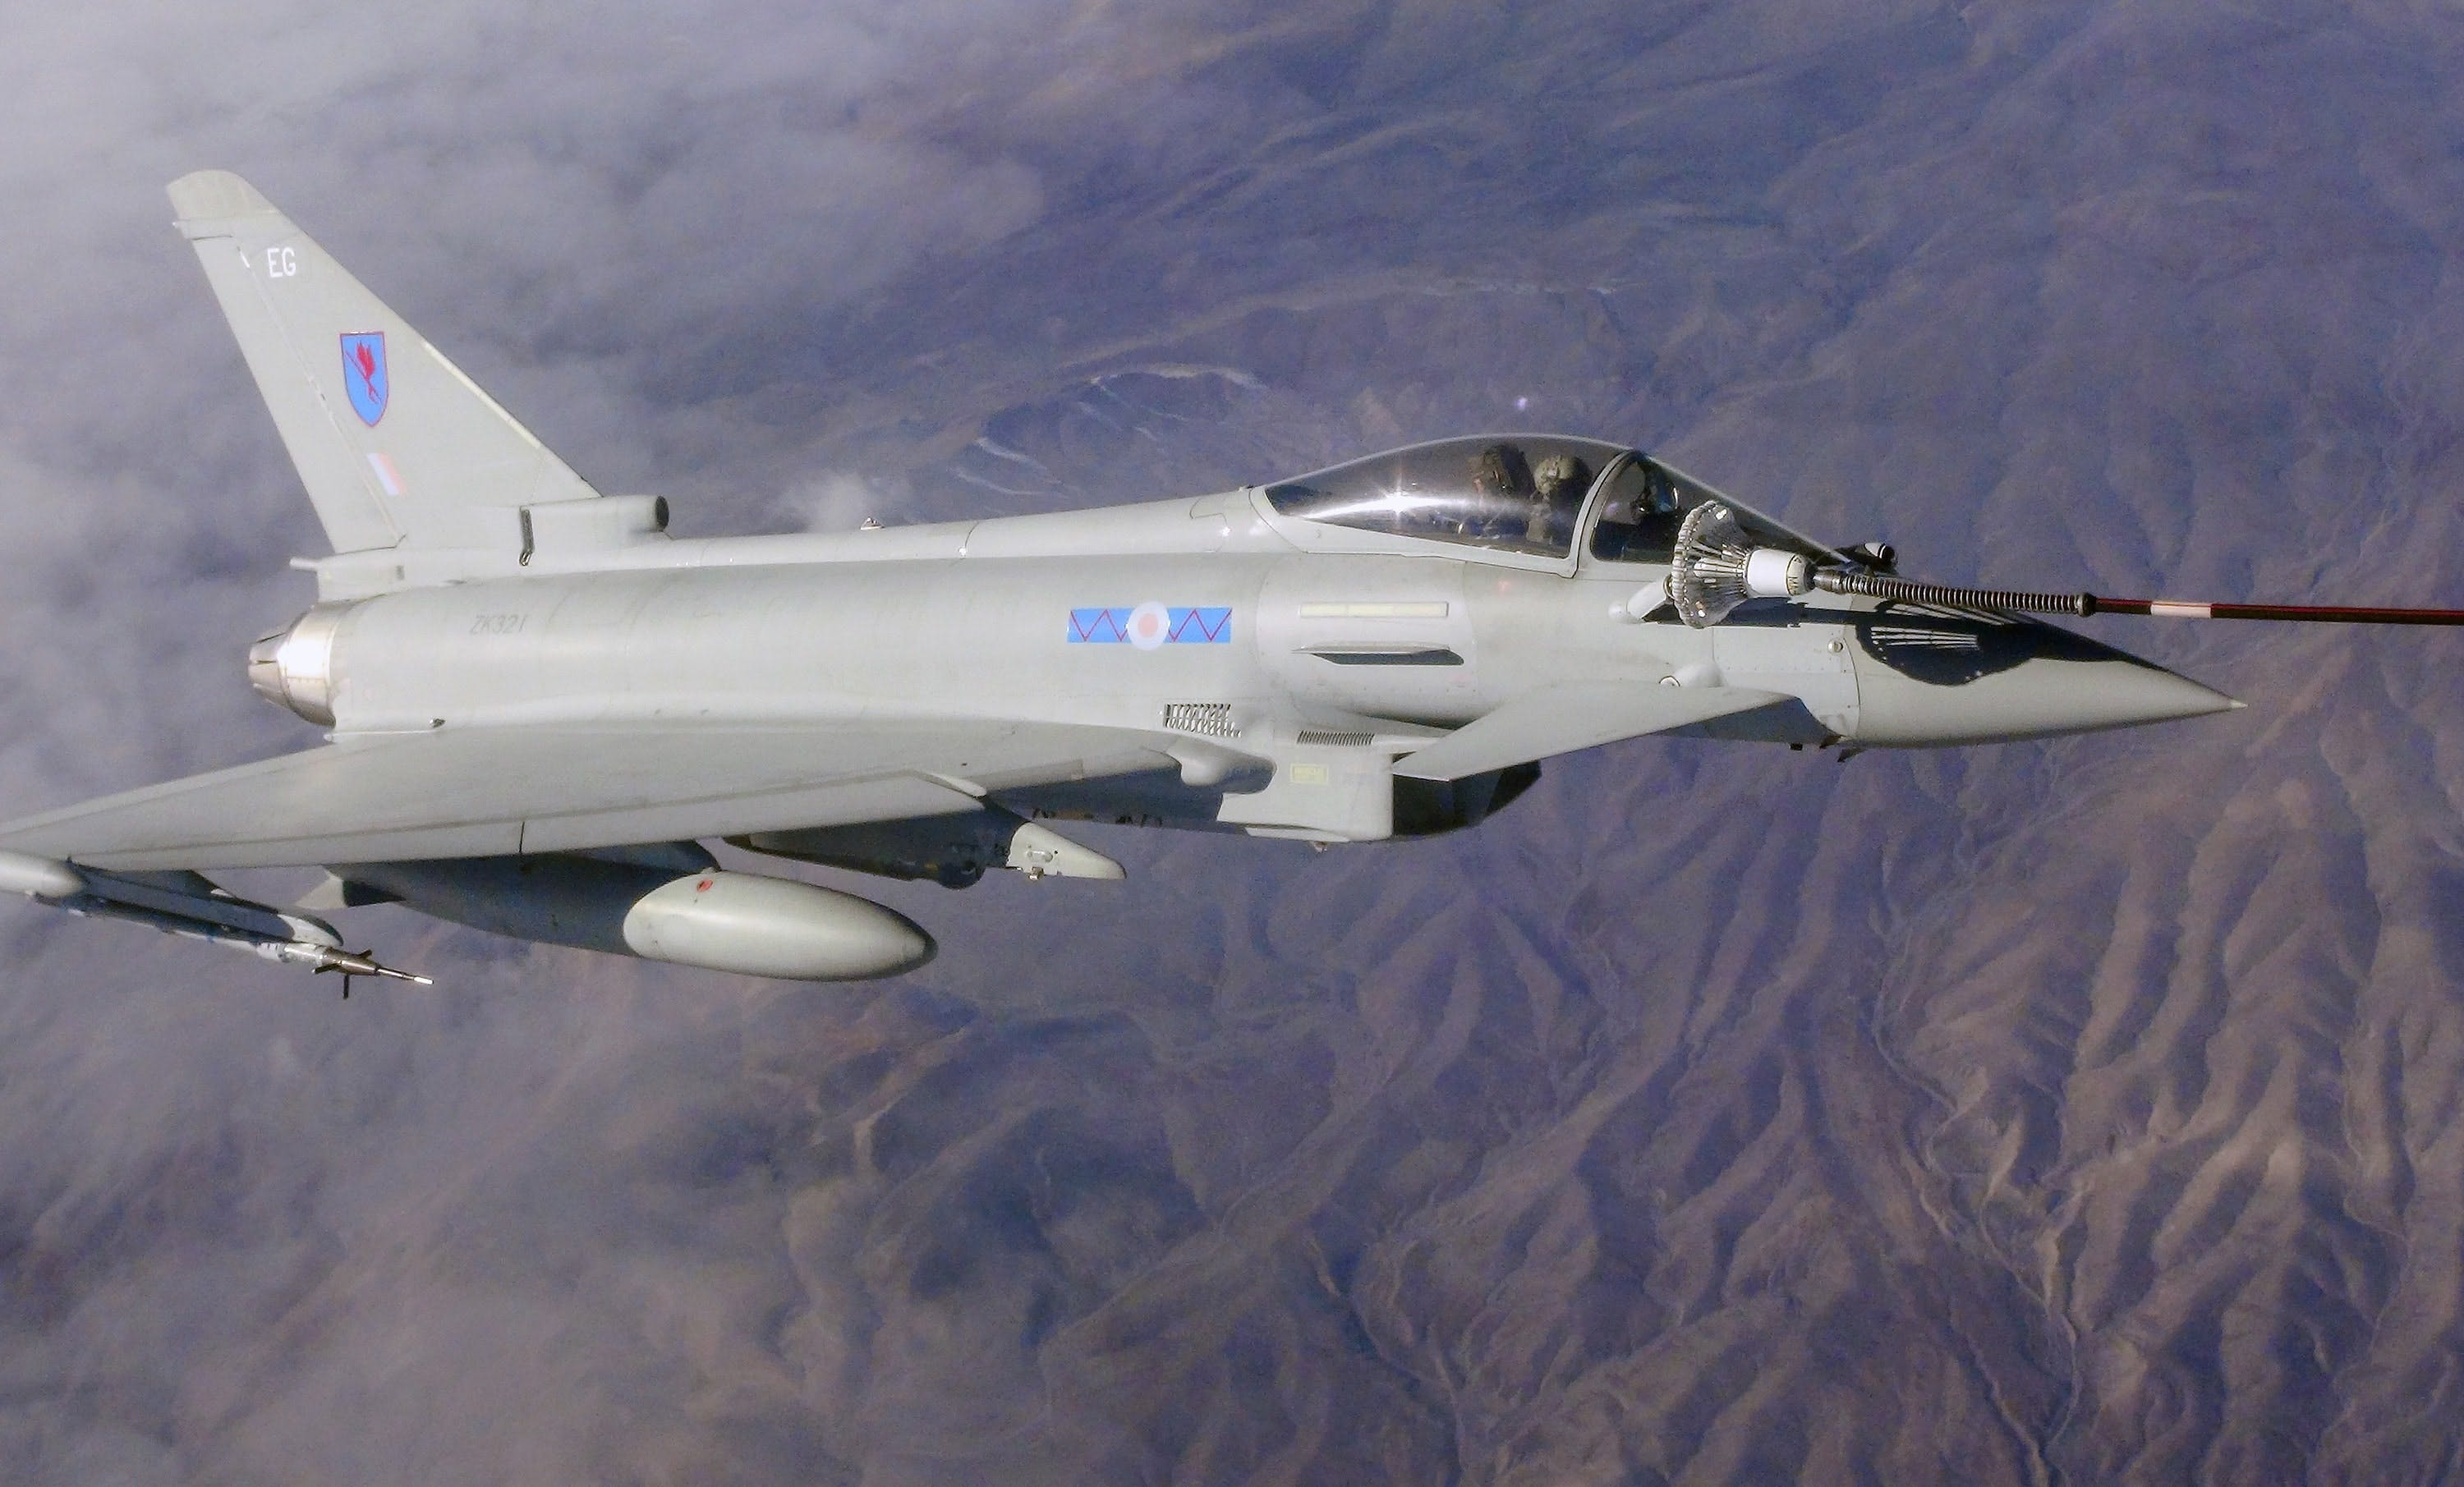 MAJOR ROLE FOR RAF AT WORLD'S PREMIER AIR COMBAT EXERCISE